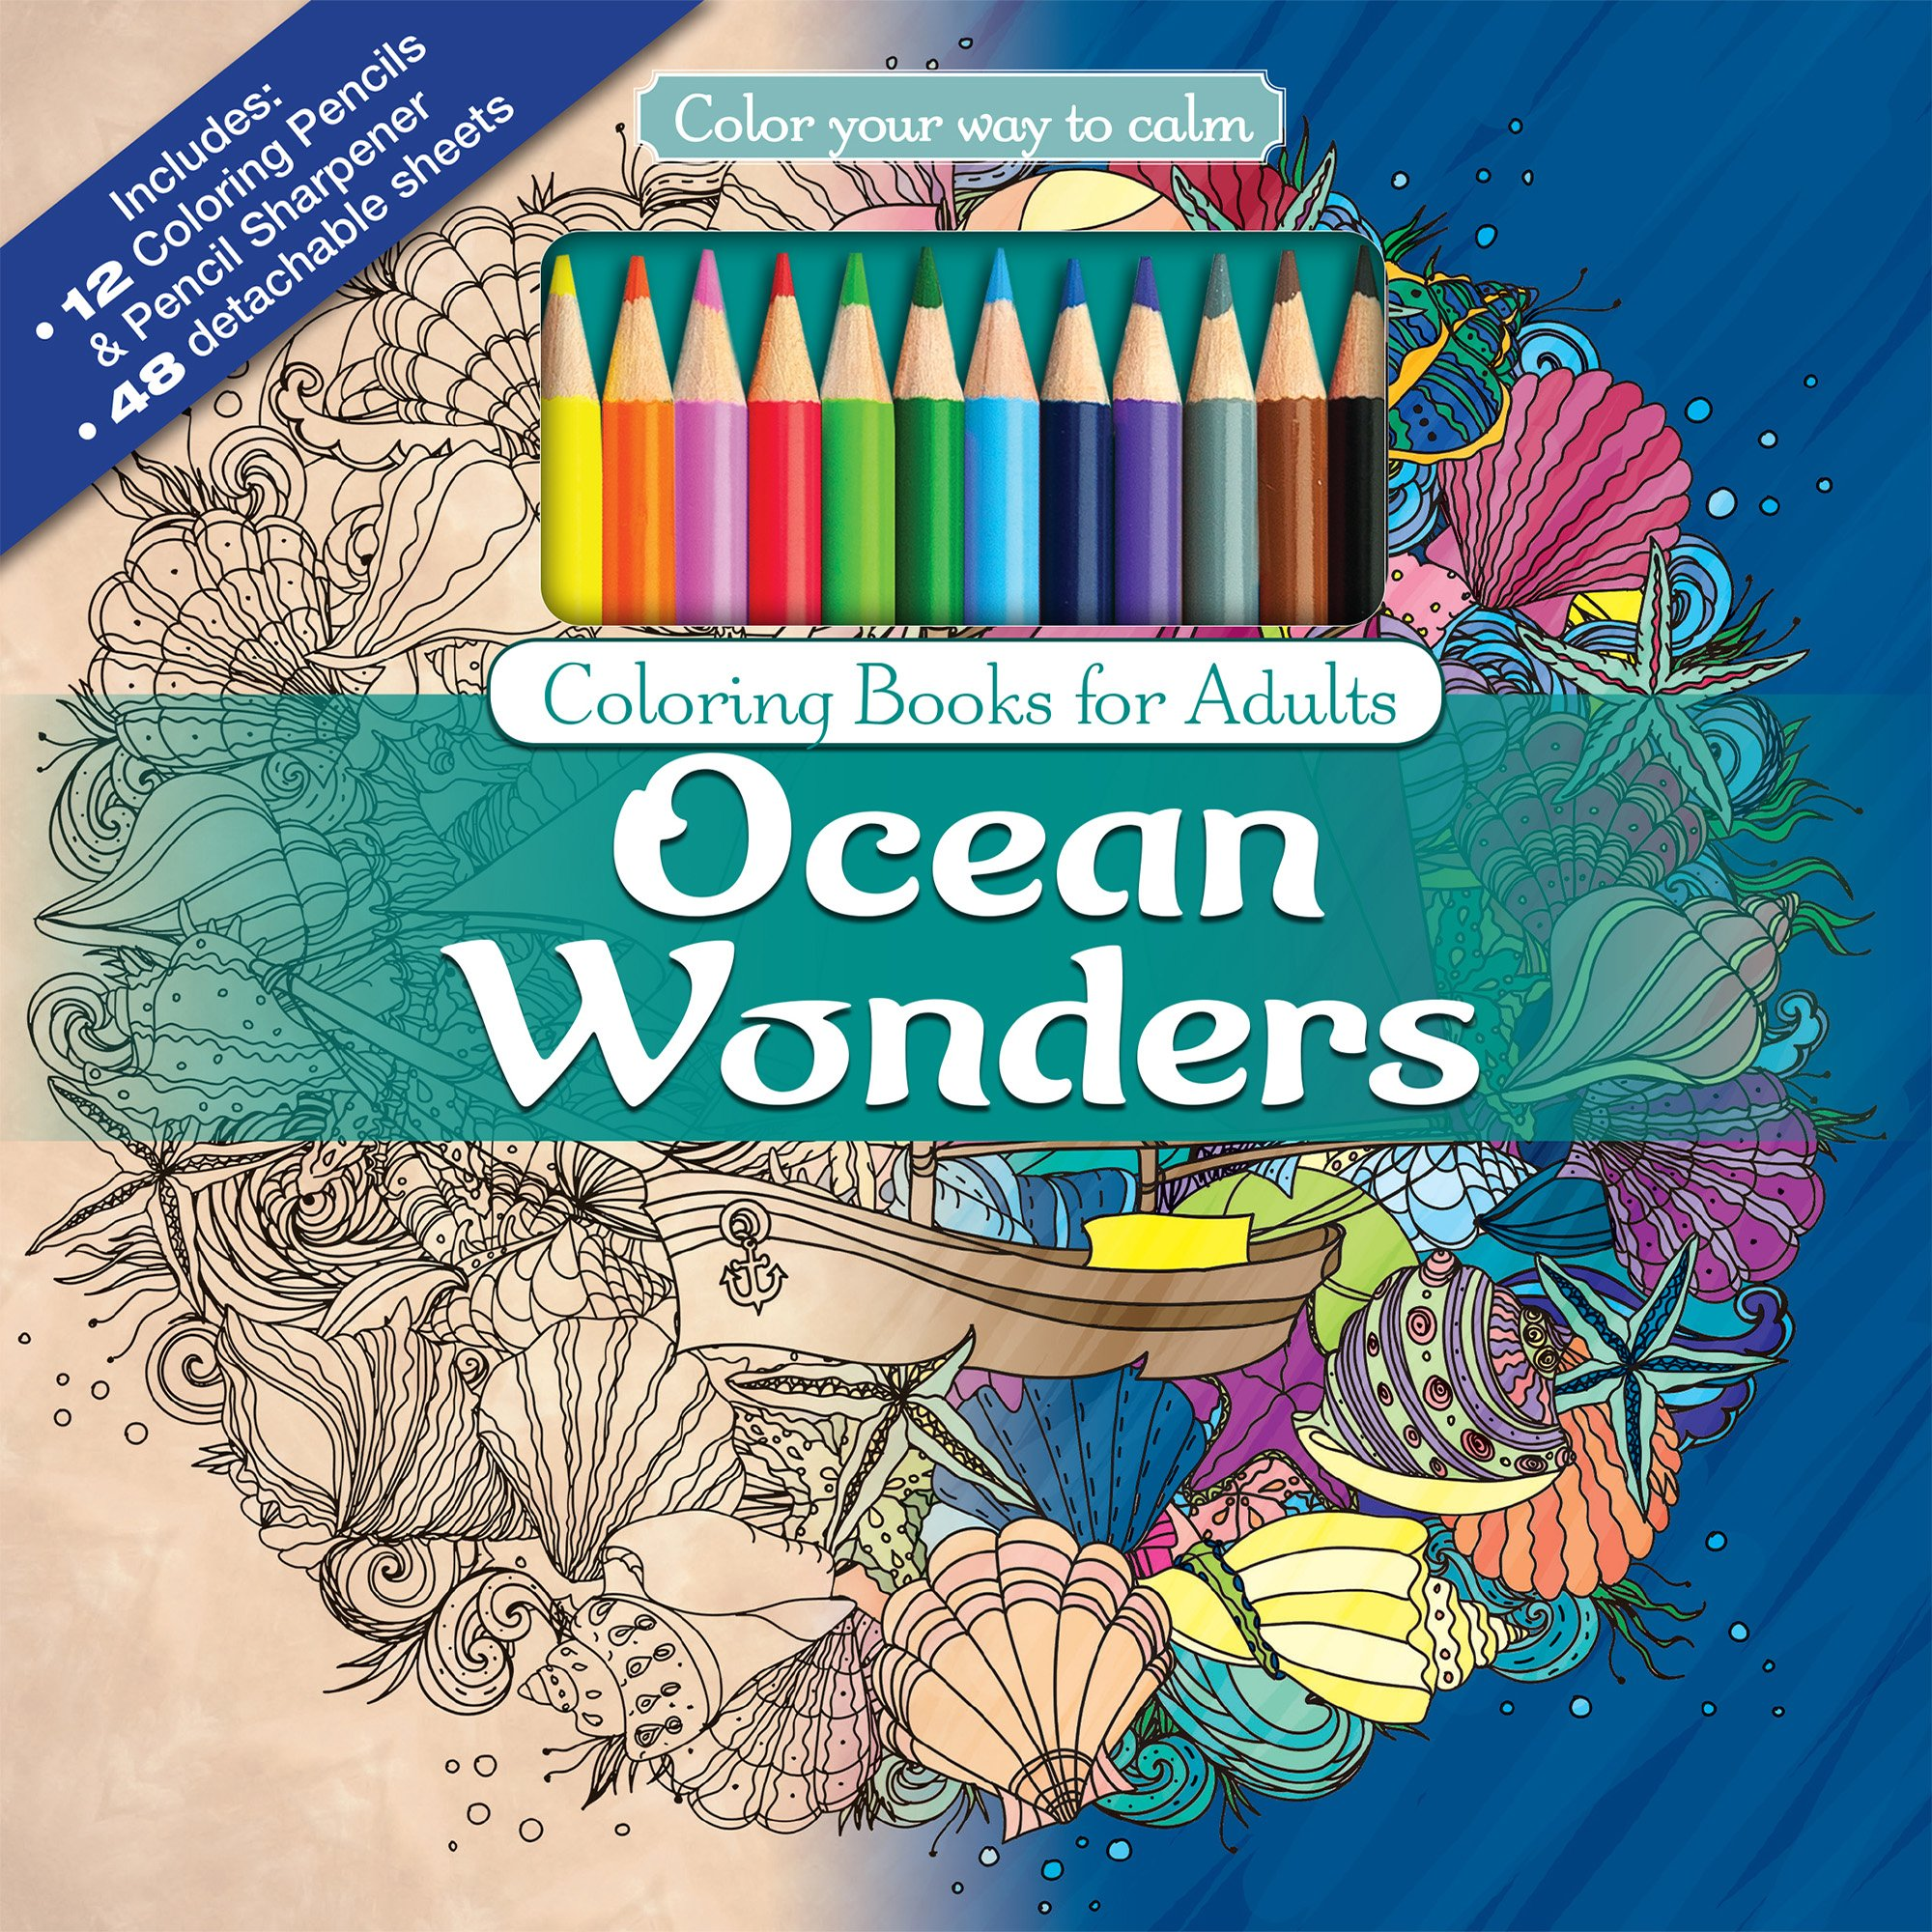 Amazon.com: Ocean Wonders Adult Coloring Book Set With 24 Colored ...